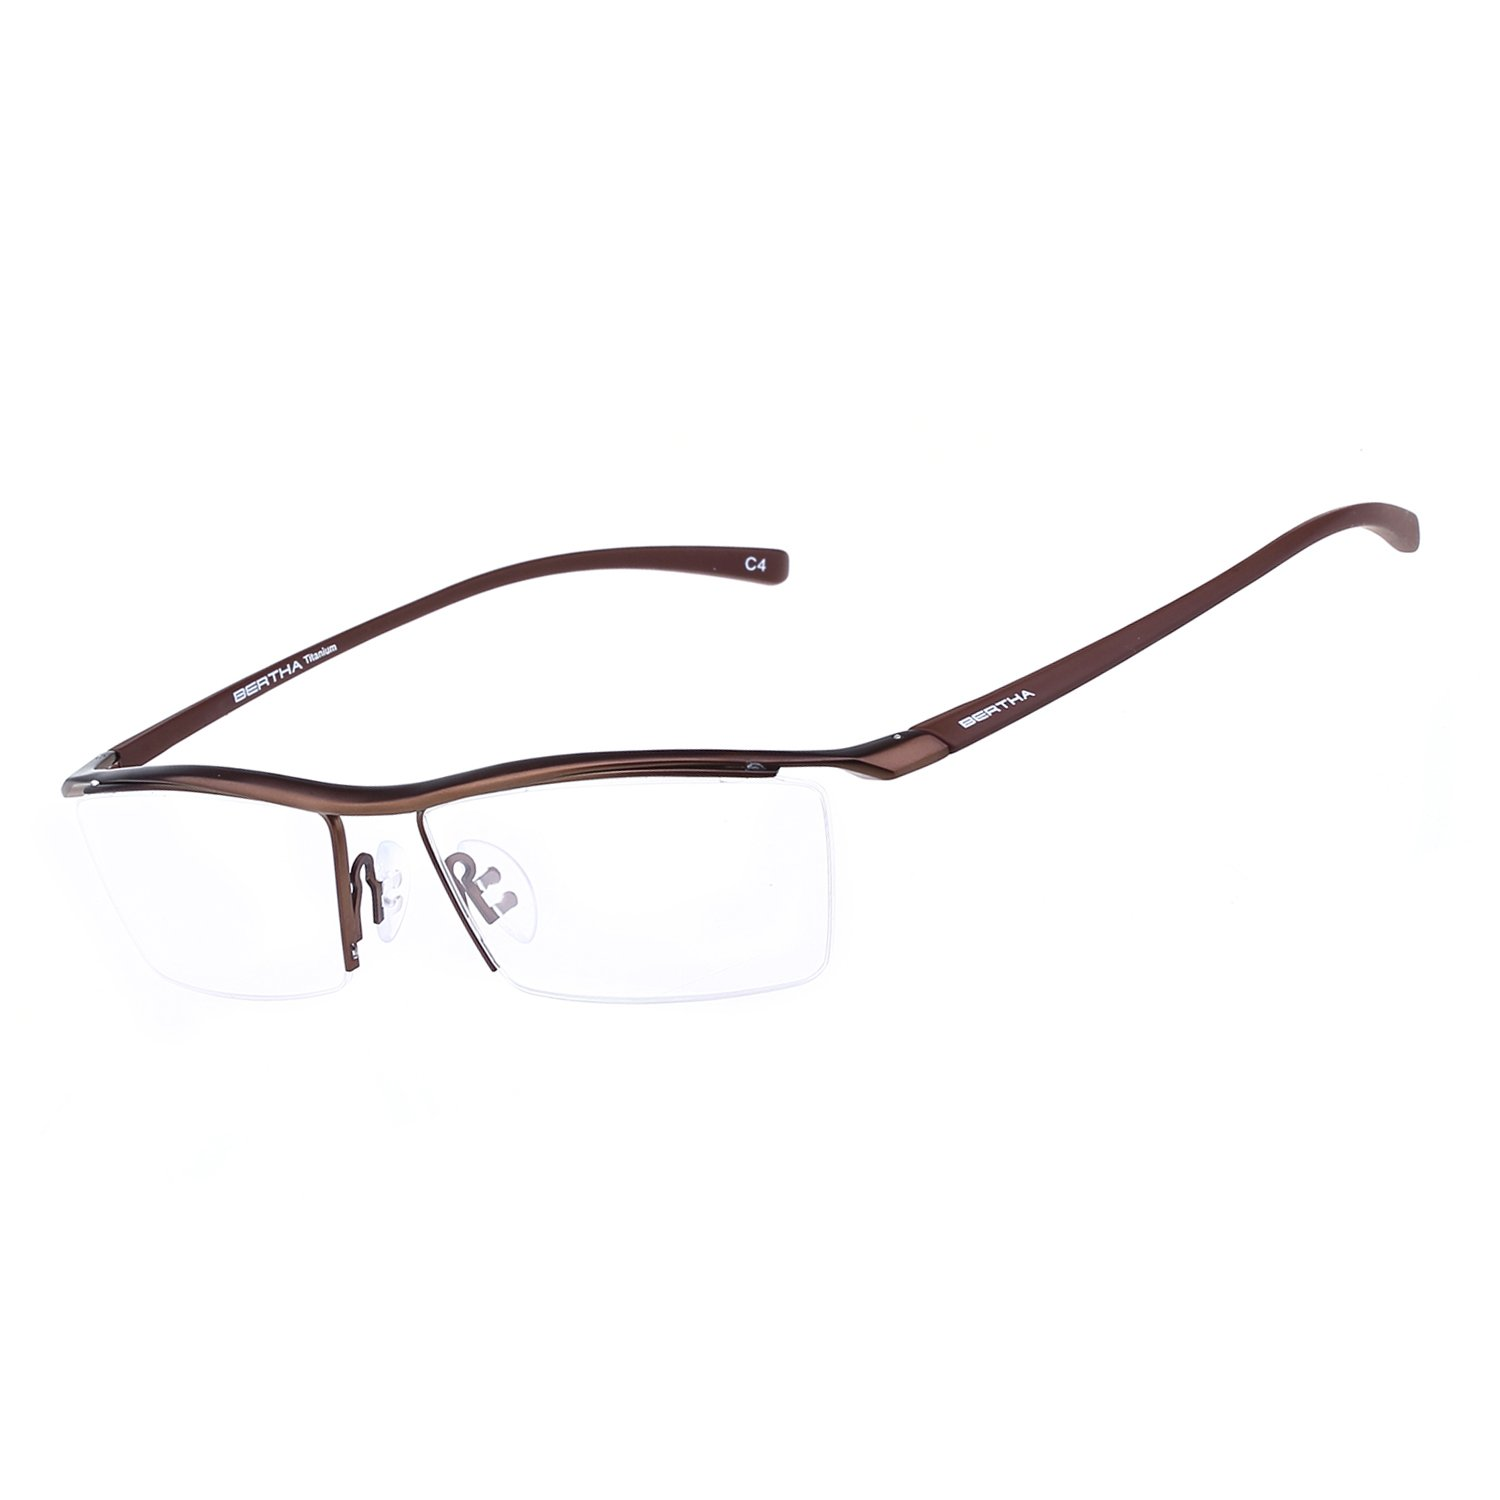 Bertha Men Z Pure Titanium Semi-rimless Eyeglasses Business Optical Frame 8189 (Bronze) by Bertha